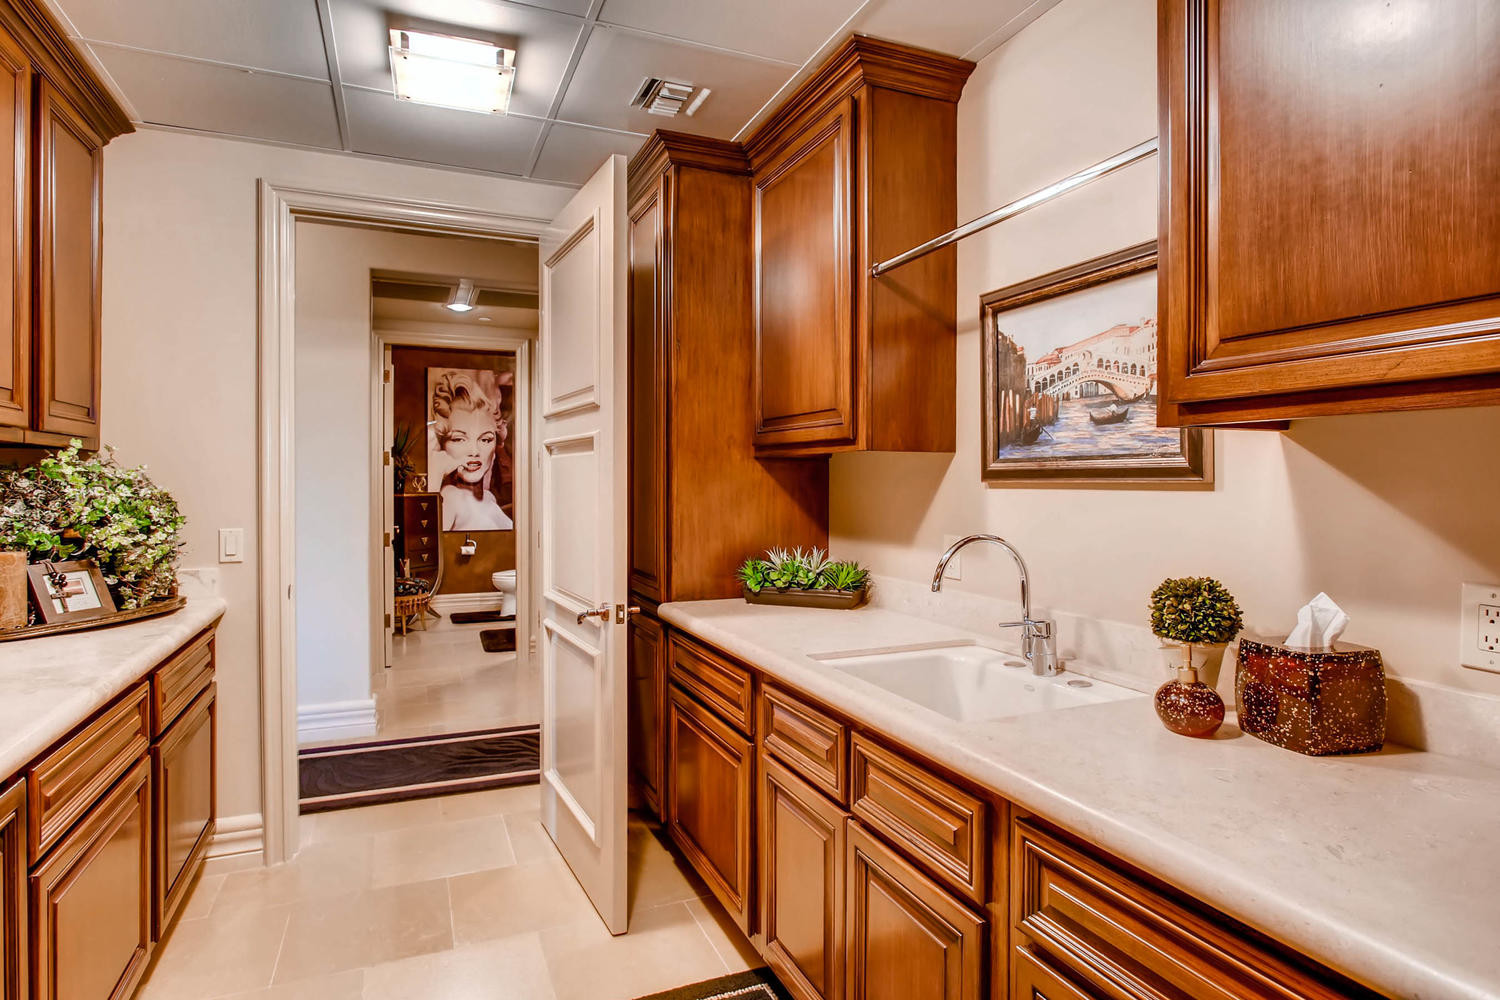 Best ideas about Laundry Room Las Vegas . Save or Pin 9103 alta dr 602 las vegas nv large 024 19 laundry room Now.